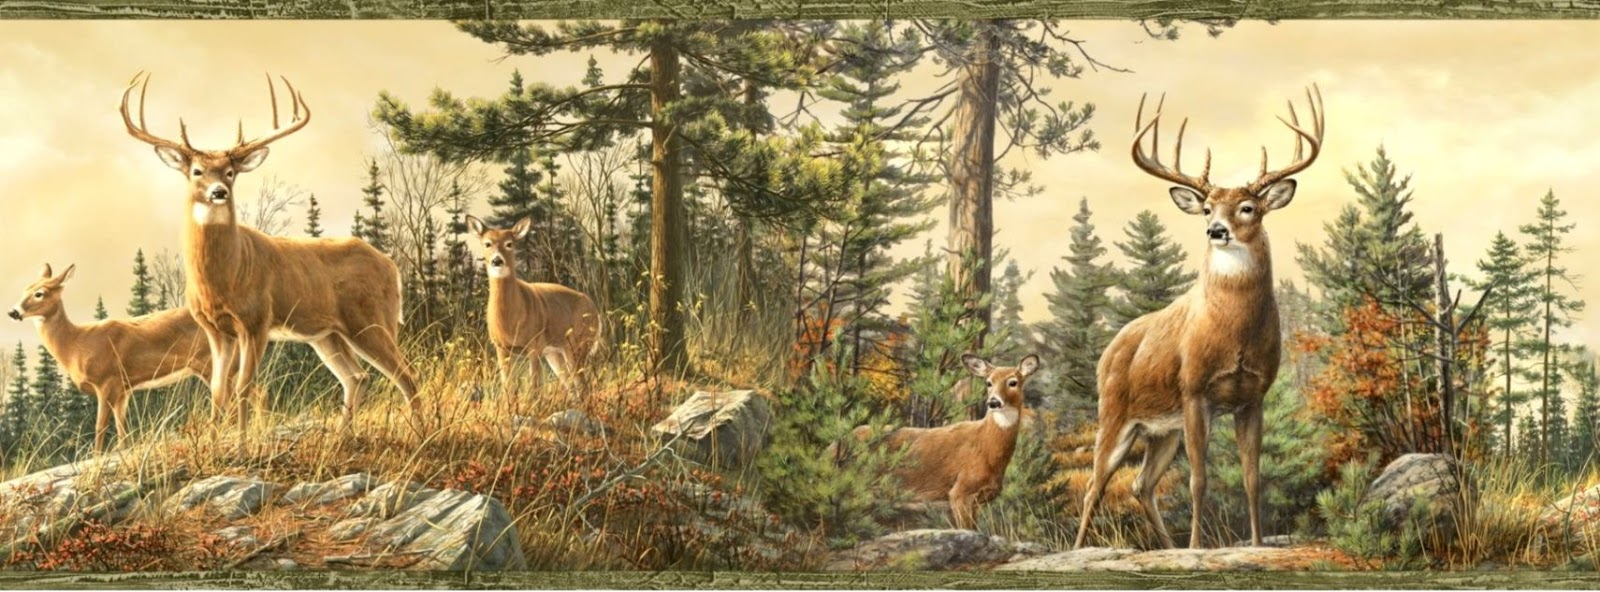 Whitetail Deer Wallpaper Border All HD Wallpapers Gallery 1600x592